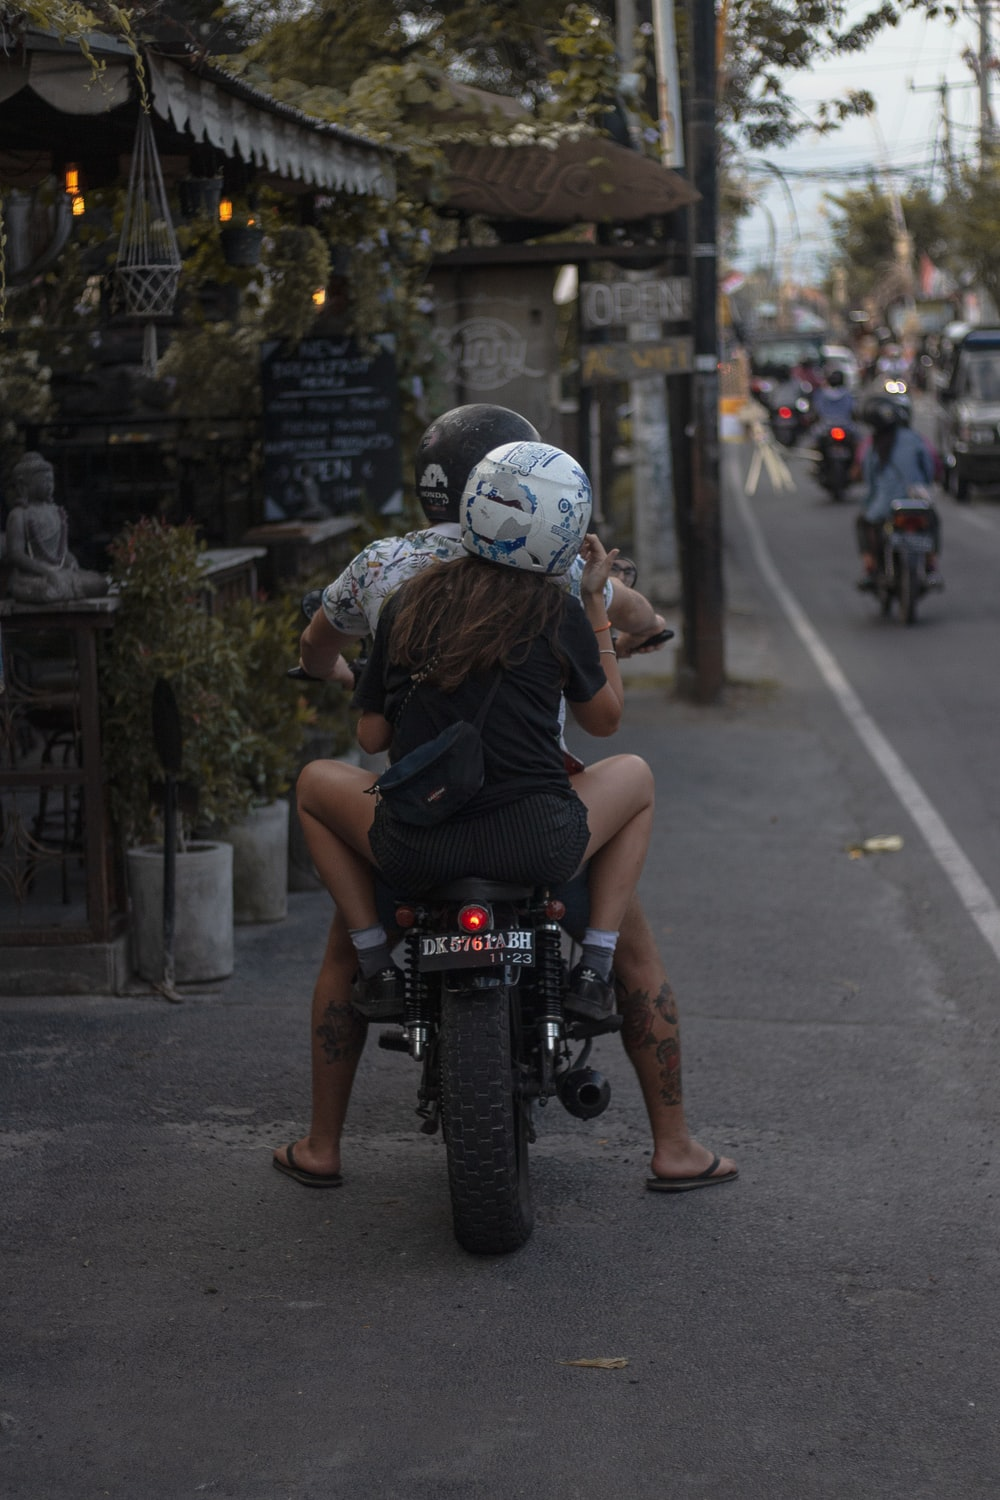 couple riding on the motorcycle